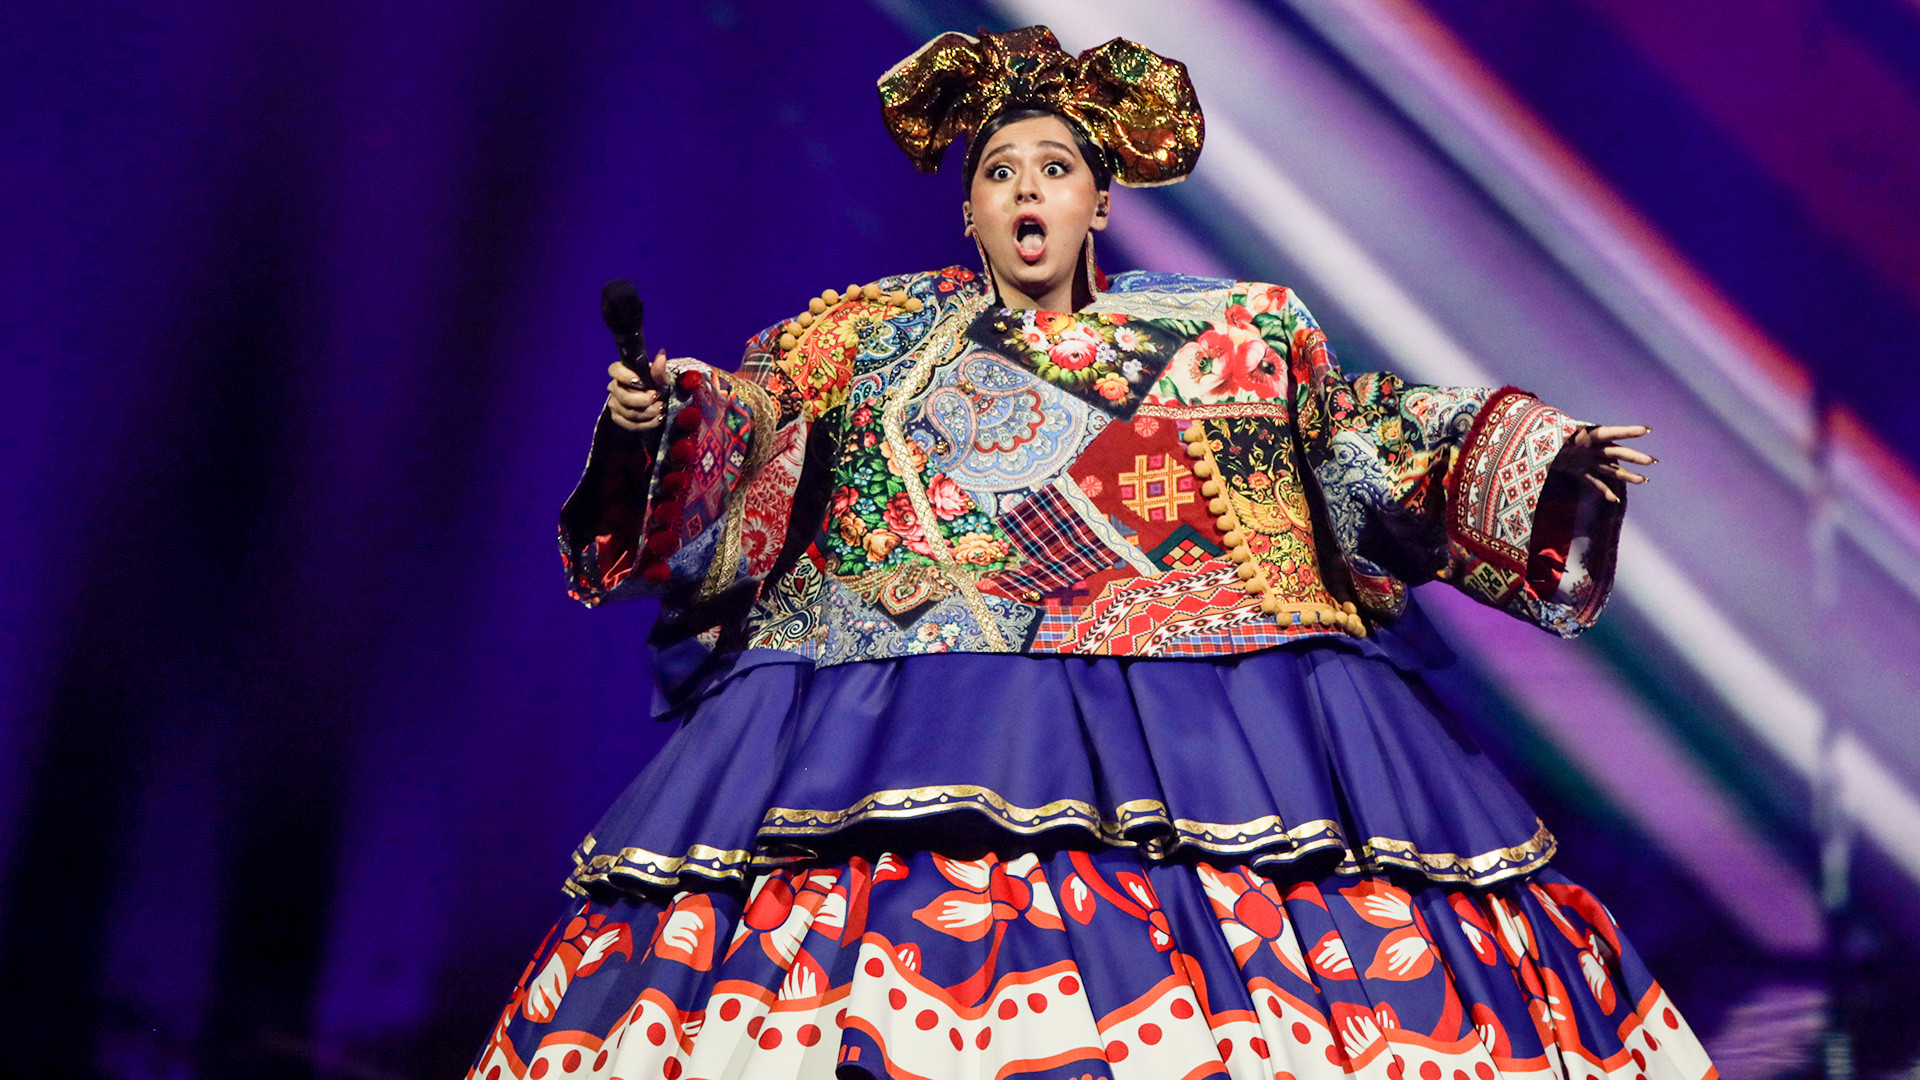 Manizha from Russia performs at the first semi-final of the Eurovision Song Contest at Ahoy arena in Rotterdam, Netherlands, Tuesday, May 18, 2021